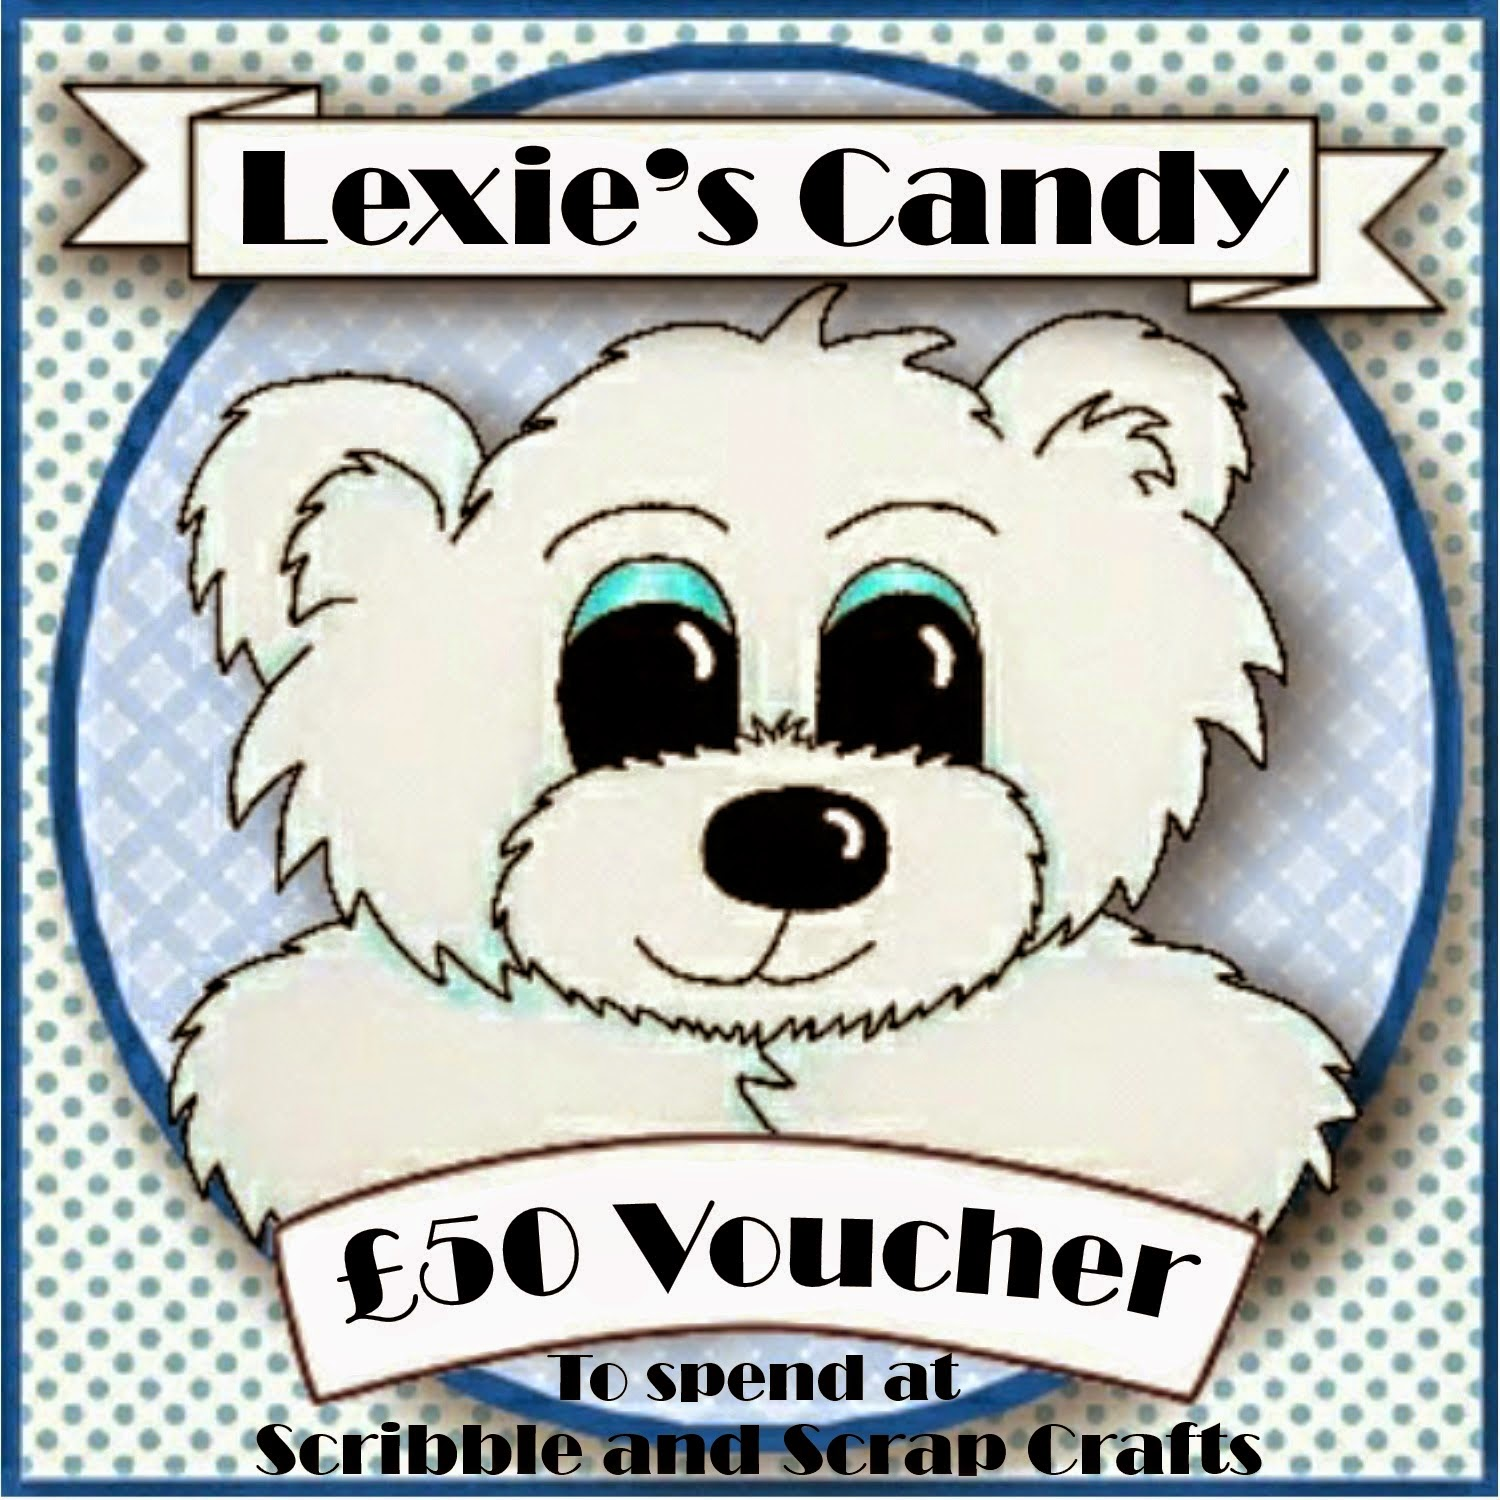 Lexie's Fabulous Blog Candy